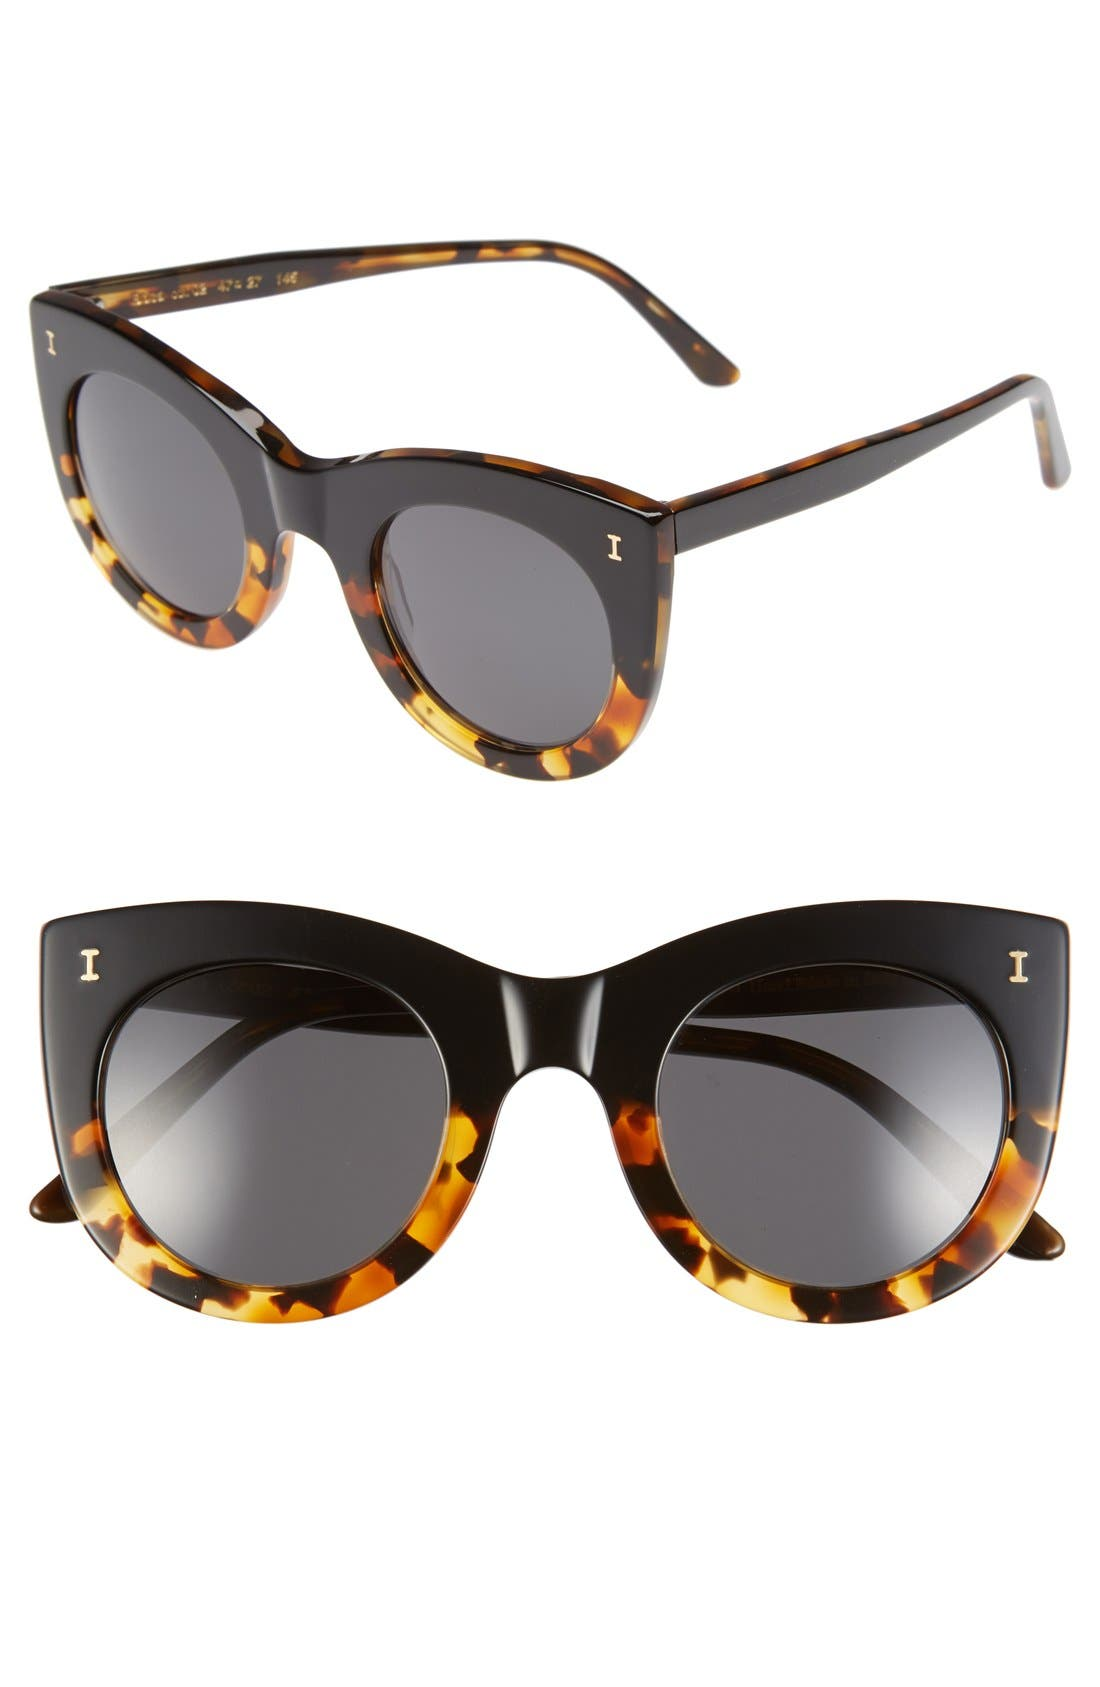 Alternate Image 1 Selected - Illesteva 'Boca' 47mm Round Sunglasses